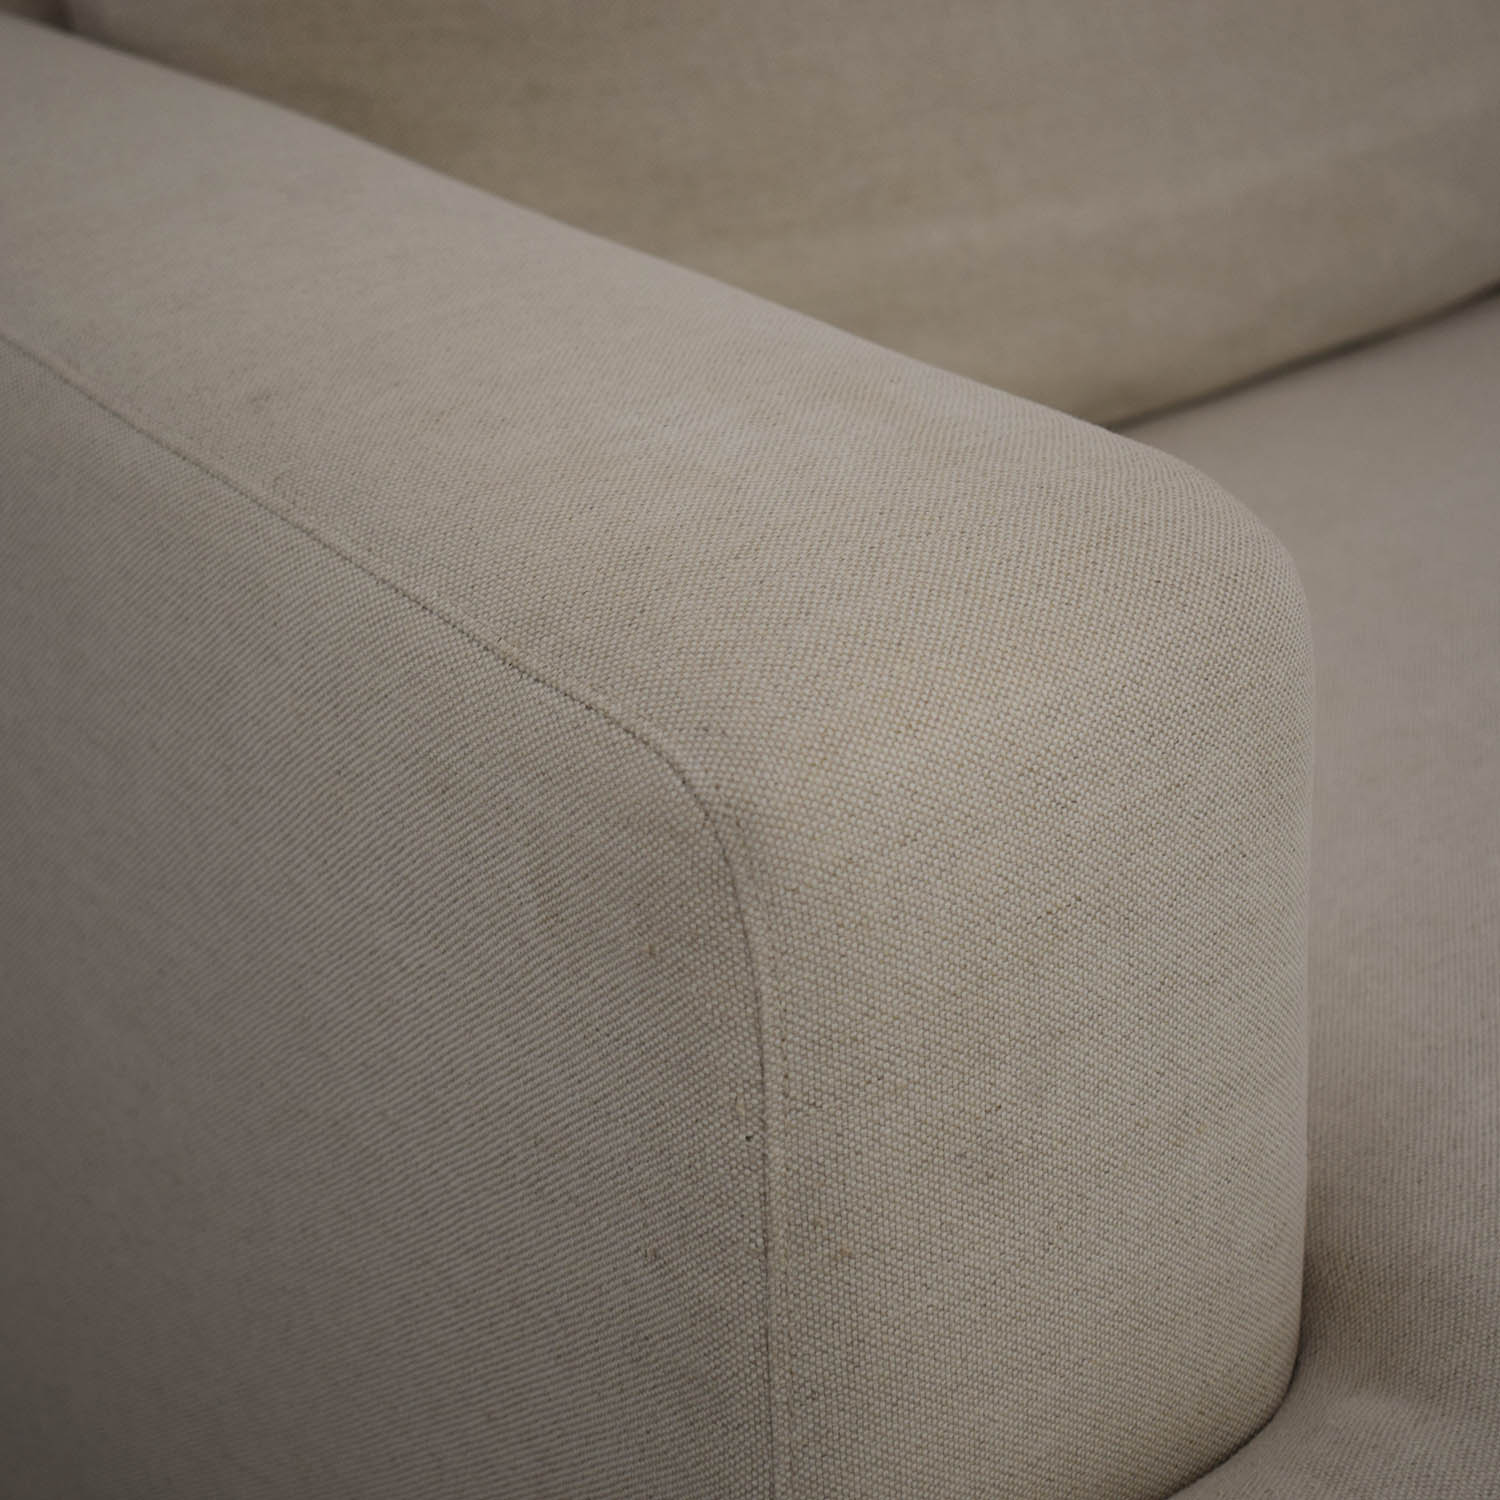 Pottery Barn Pottery Barn Grand Hampton Couch second hand